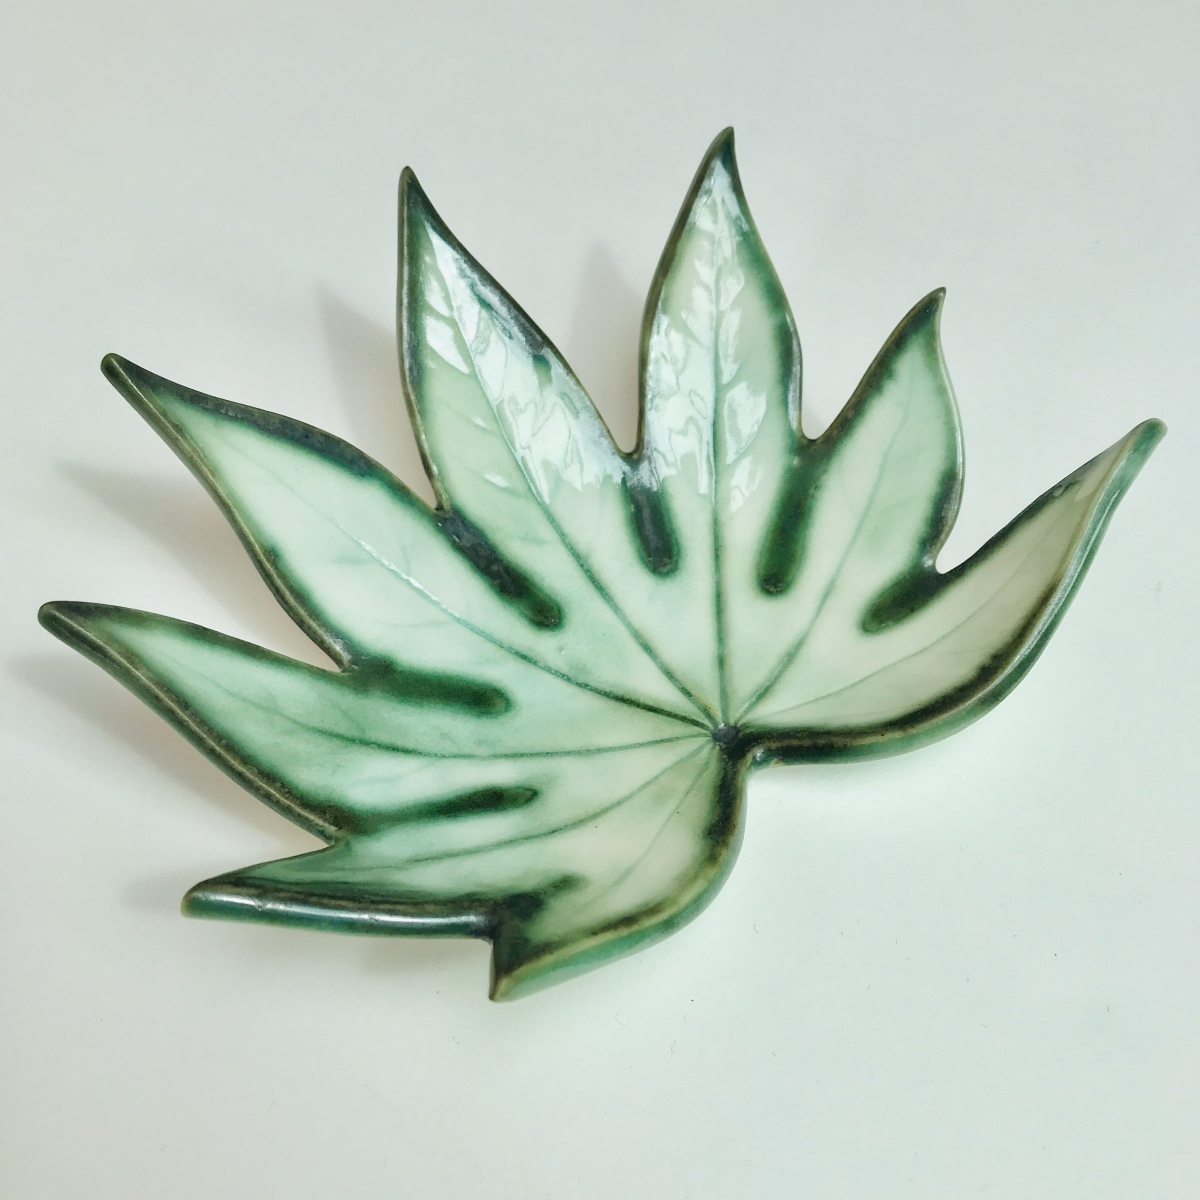 Fatsia Leaf Trinket Dish made in Porcelain by Sonya Ceramic Art